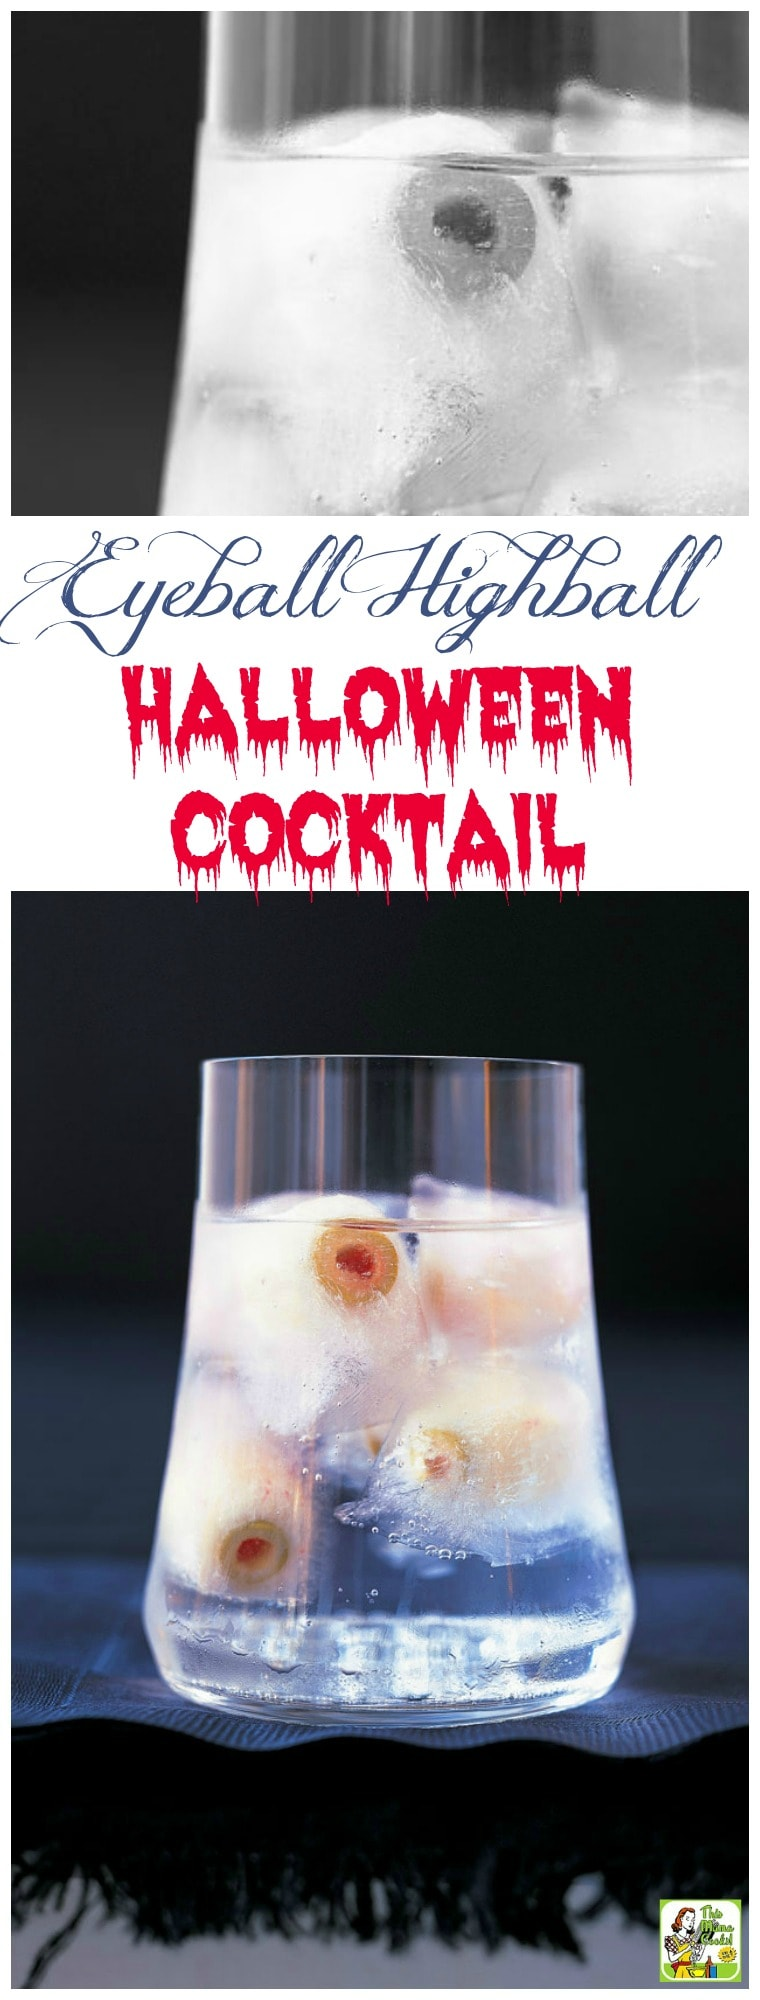 more scary halloween drink recipes eyeball highball halloween cocktail searching for halloween cocktail ideas